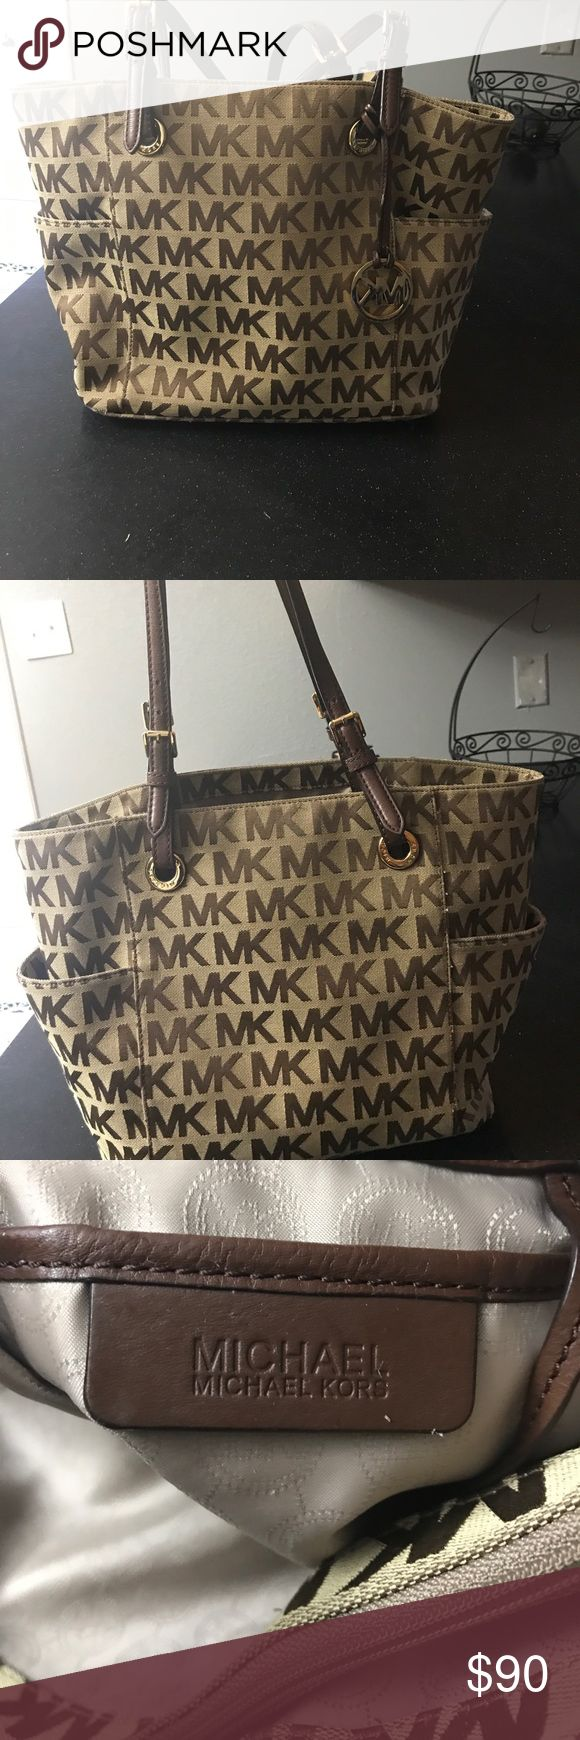 Michael kors purse Michael kors purse brown with gold. A few stains on the inside but that's all. Michael Kors Bags Totes